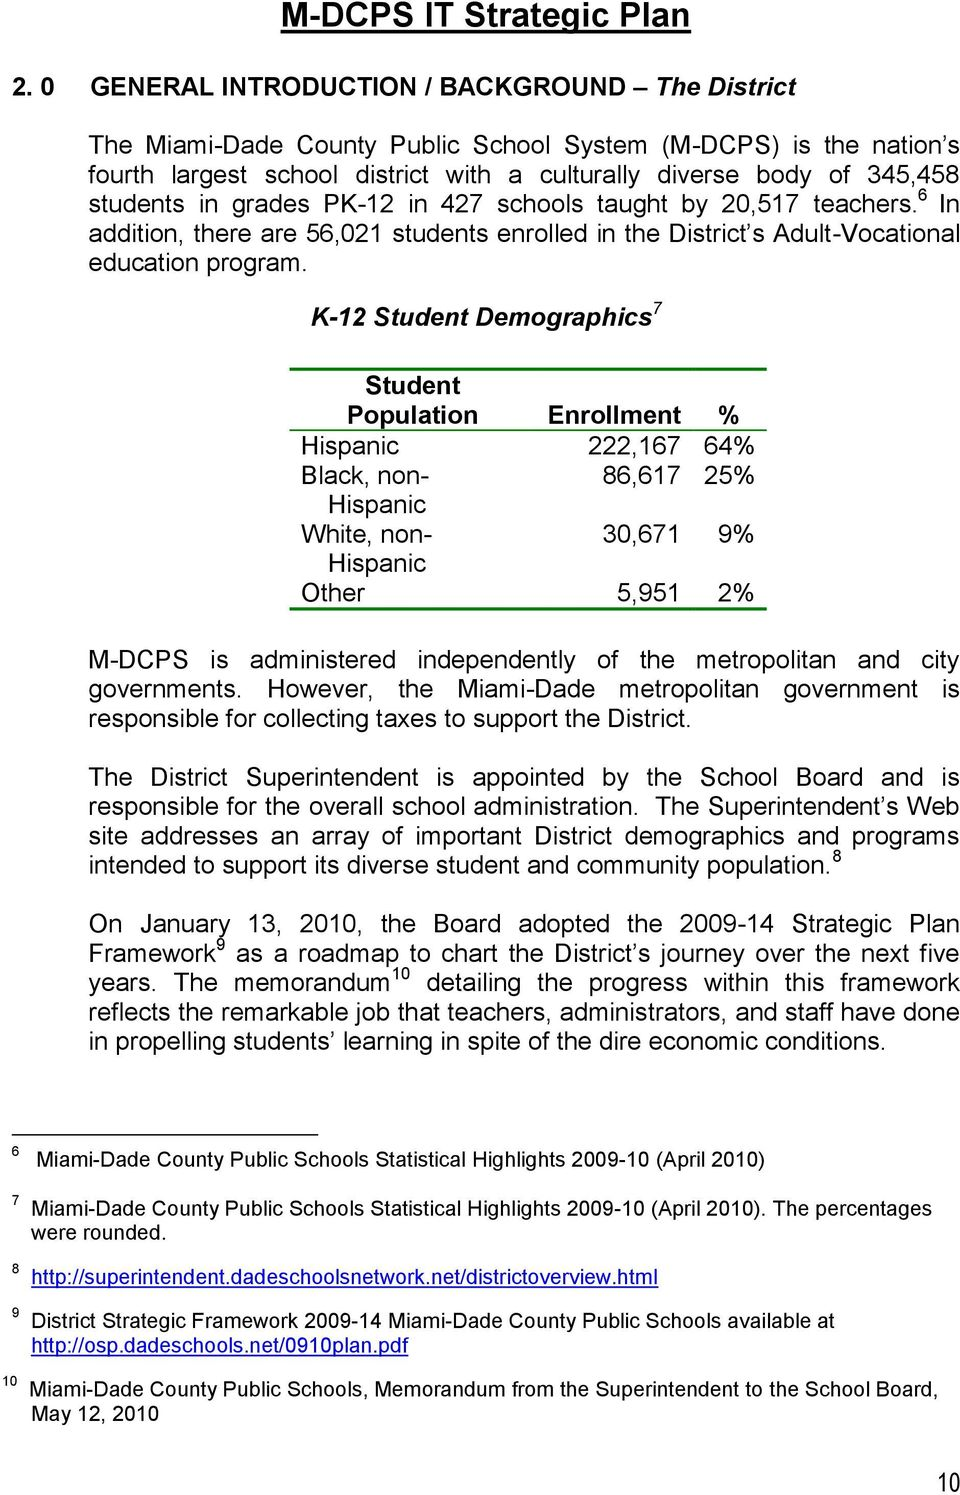 K-12 Student Demographics 7 Student Population Enrollment % Hispanic 222,167 64% Black, non- 86,617 25% Hispanic White, non- 30,671 9% Hispanic Other 5,951 2% M-DCPS is administered independently of